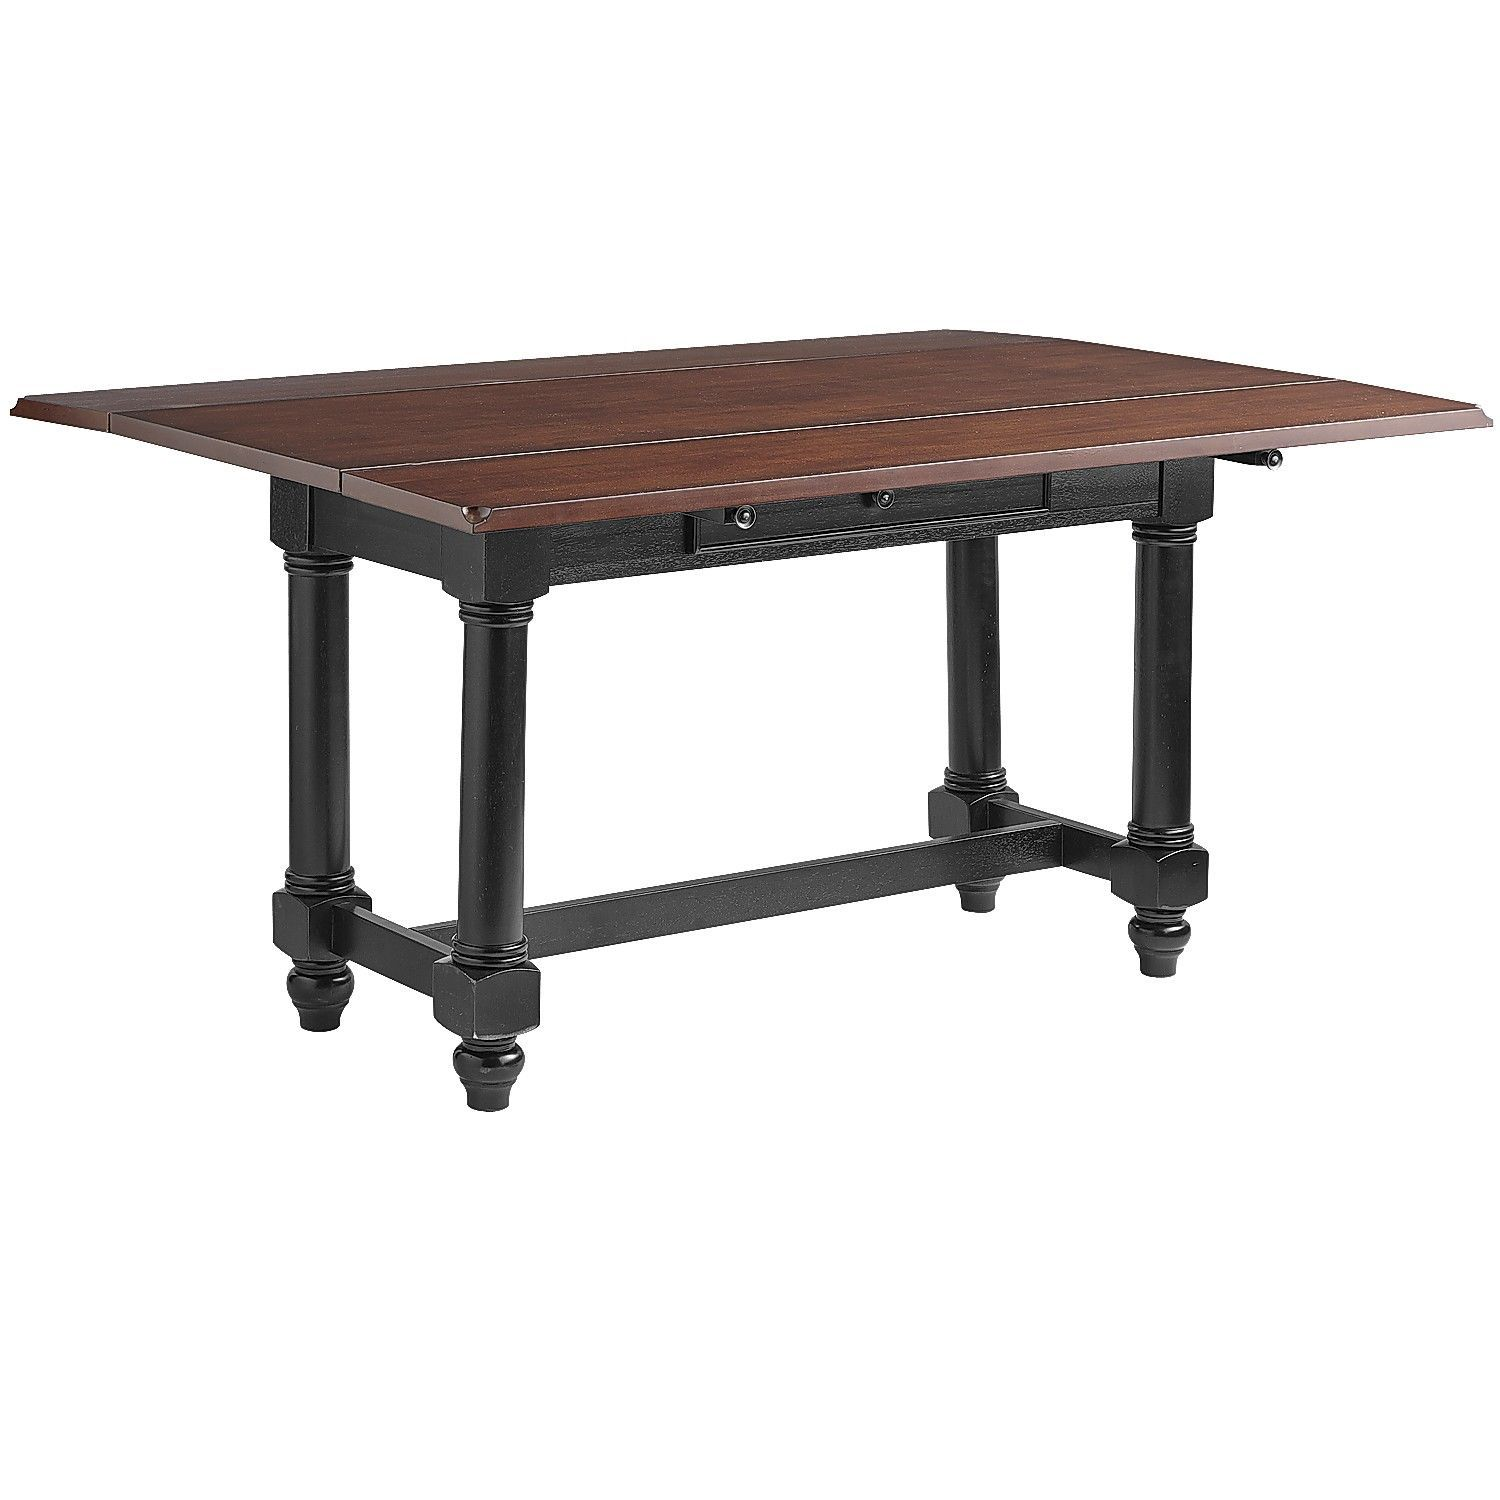 Blake Drop Leaf Table Rubbed Black 40 x60 pier one 420 00